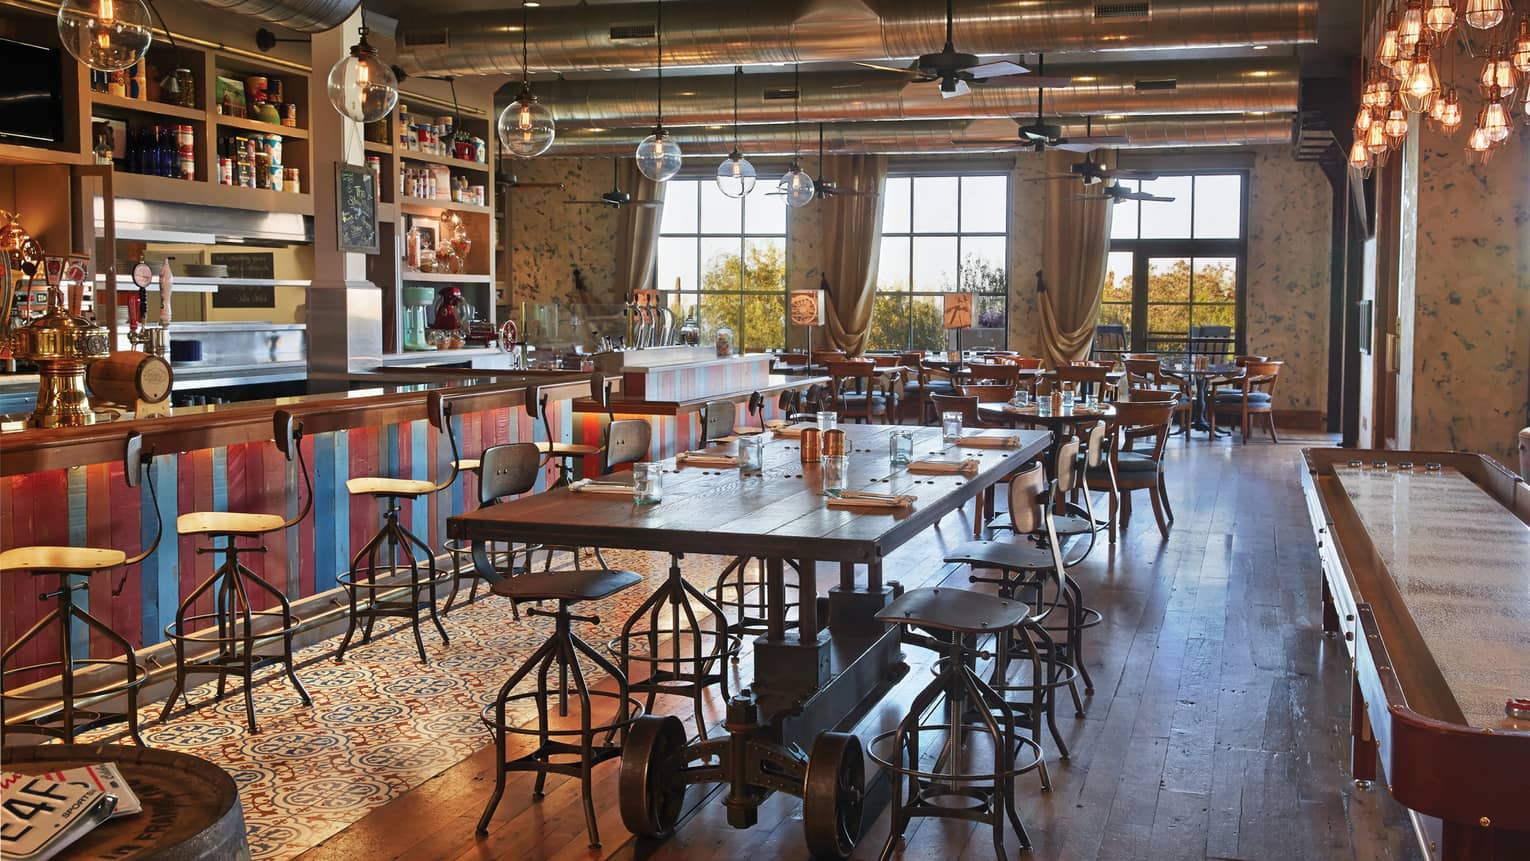 Proof bar during day, long rustic wood dining table, red-and-blue wood bar with stools, large glass bulb lights